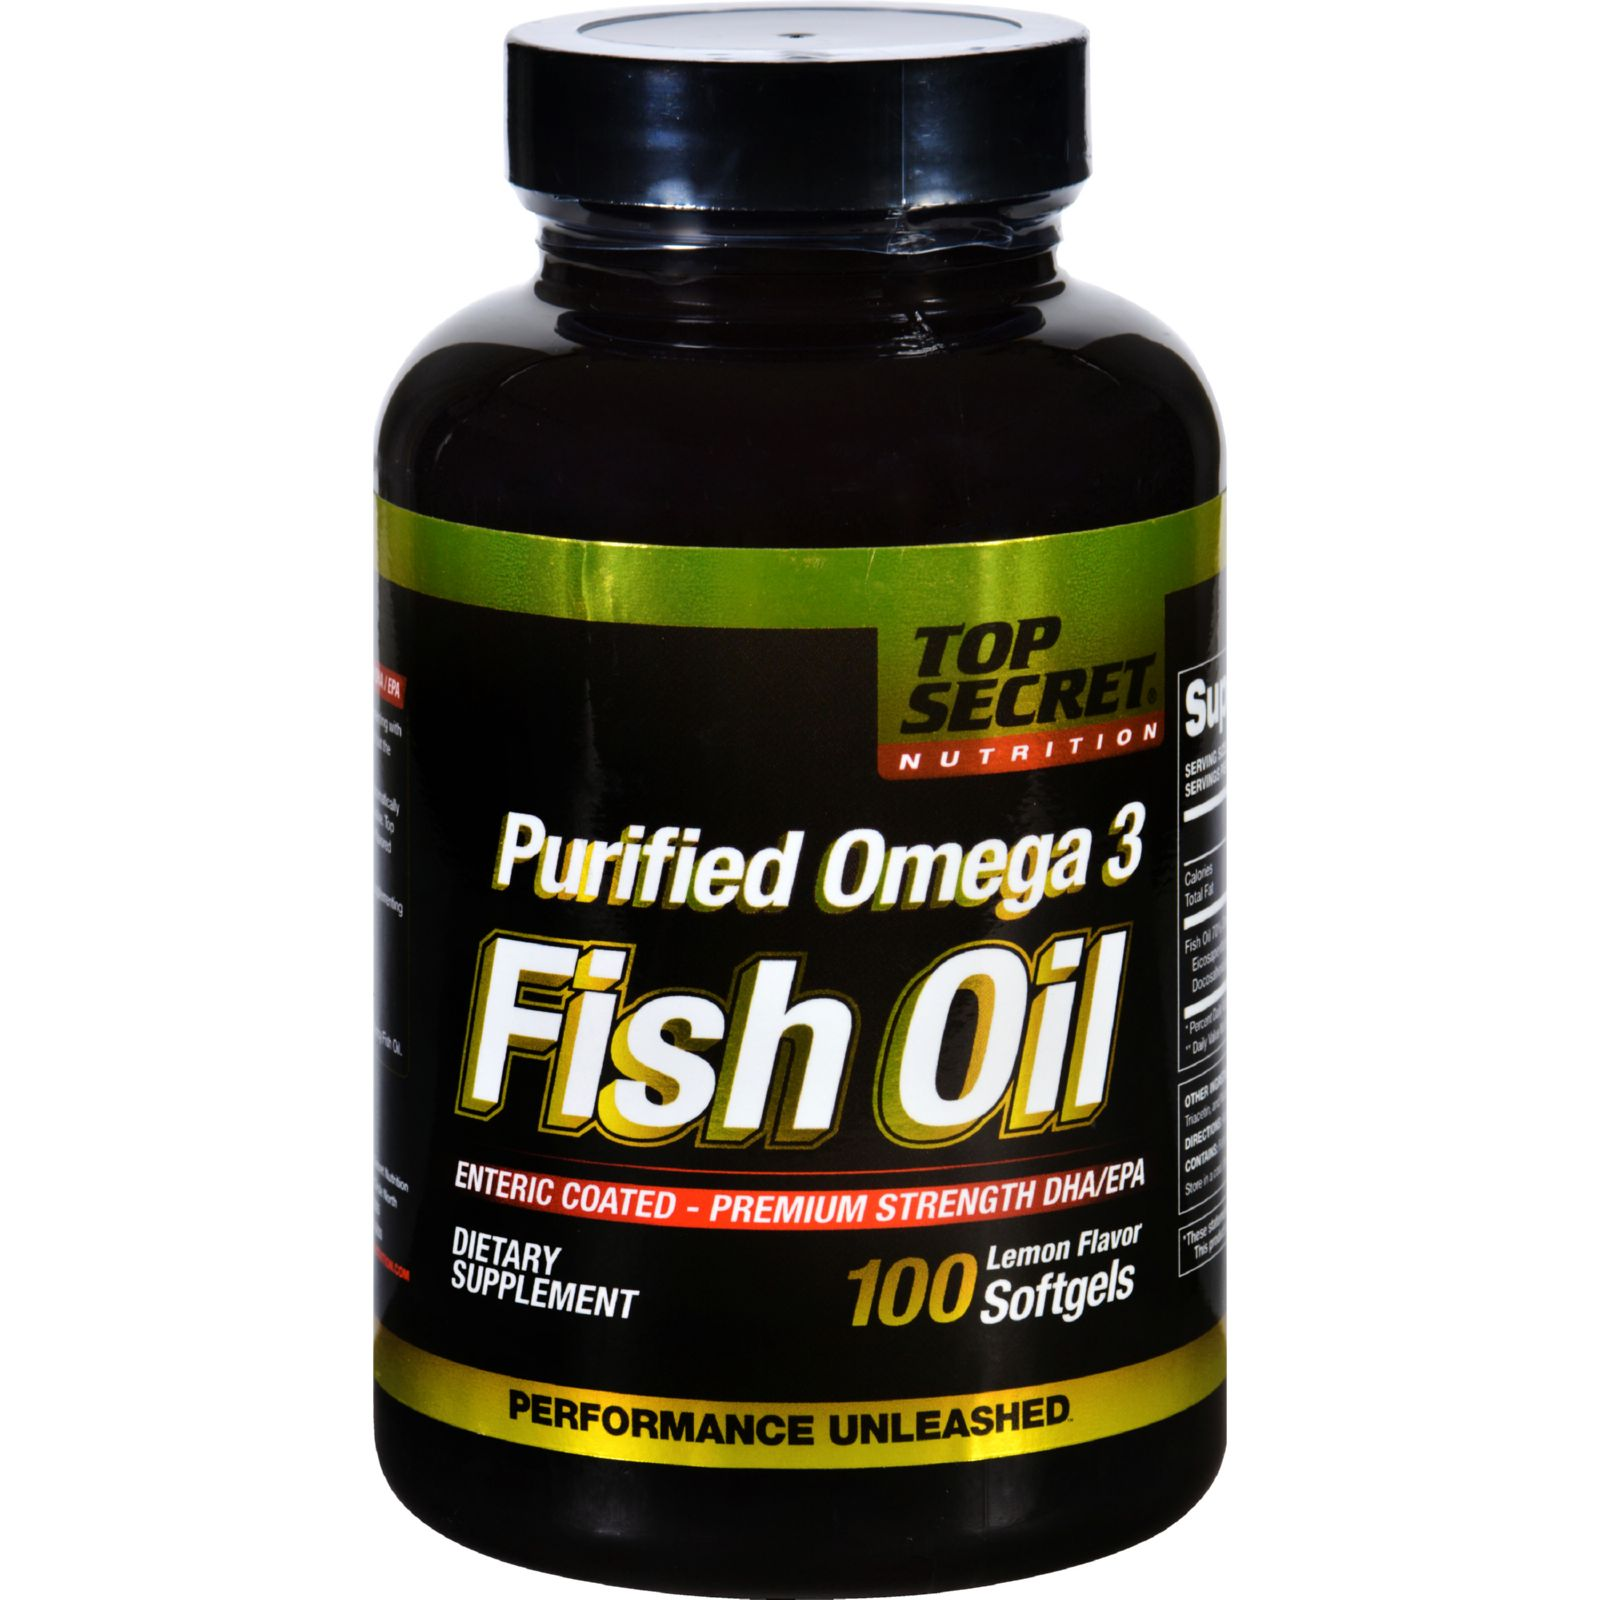 Top Secret Nutrition Fish Oil - Purified Omega-3 - Lemon - 100 Softgels